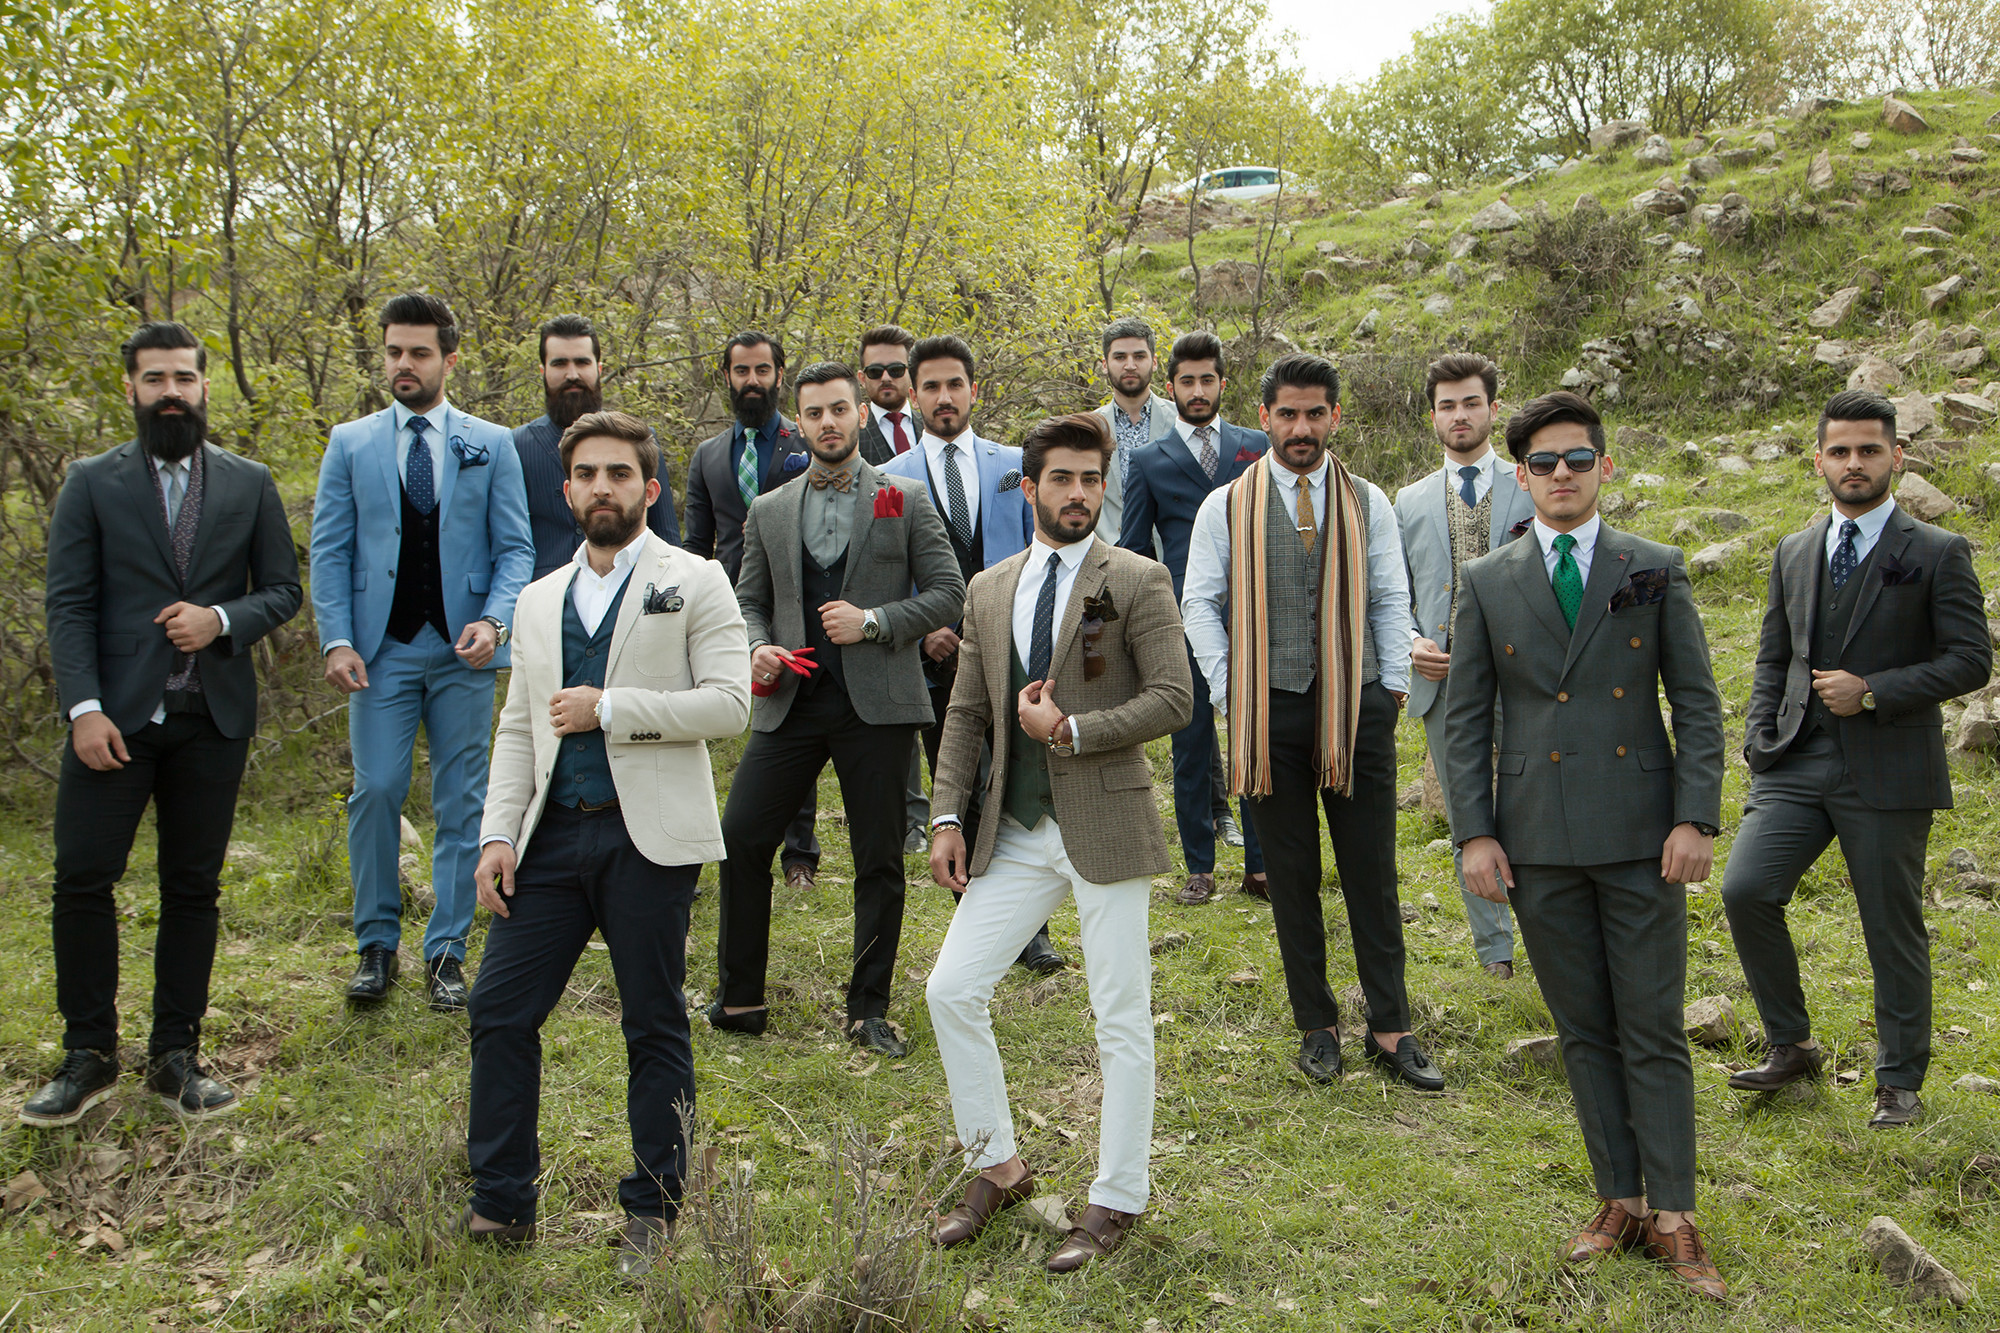 Erbil's Men's Fashion Club – © Photo: Mustafa Khayat